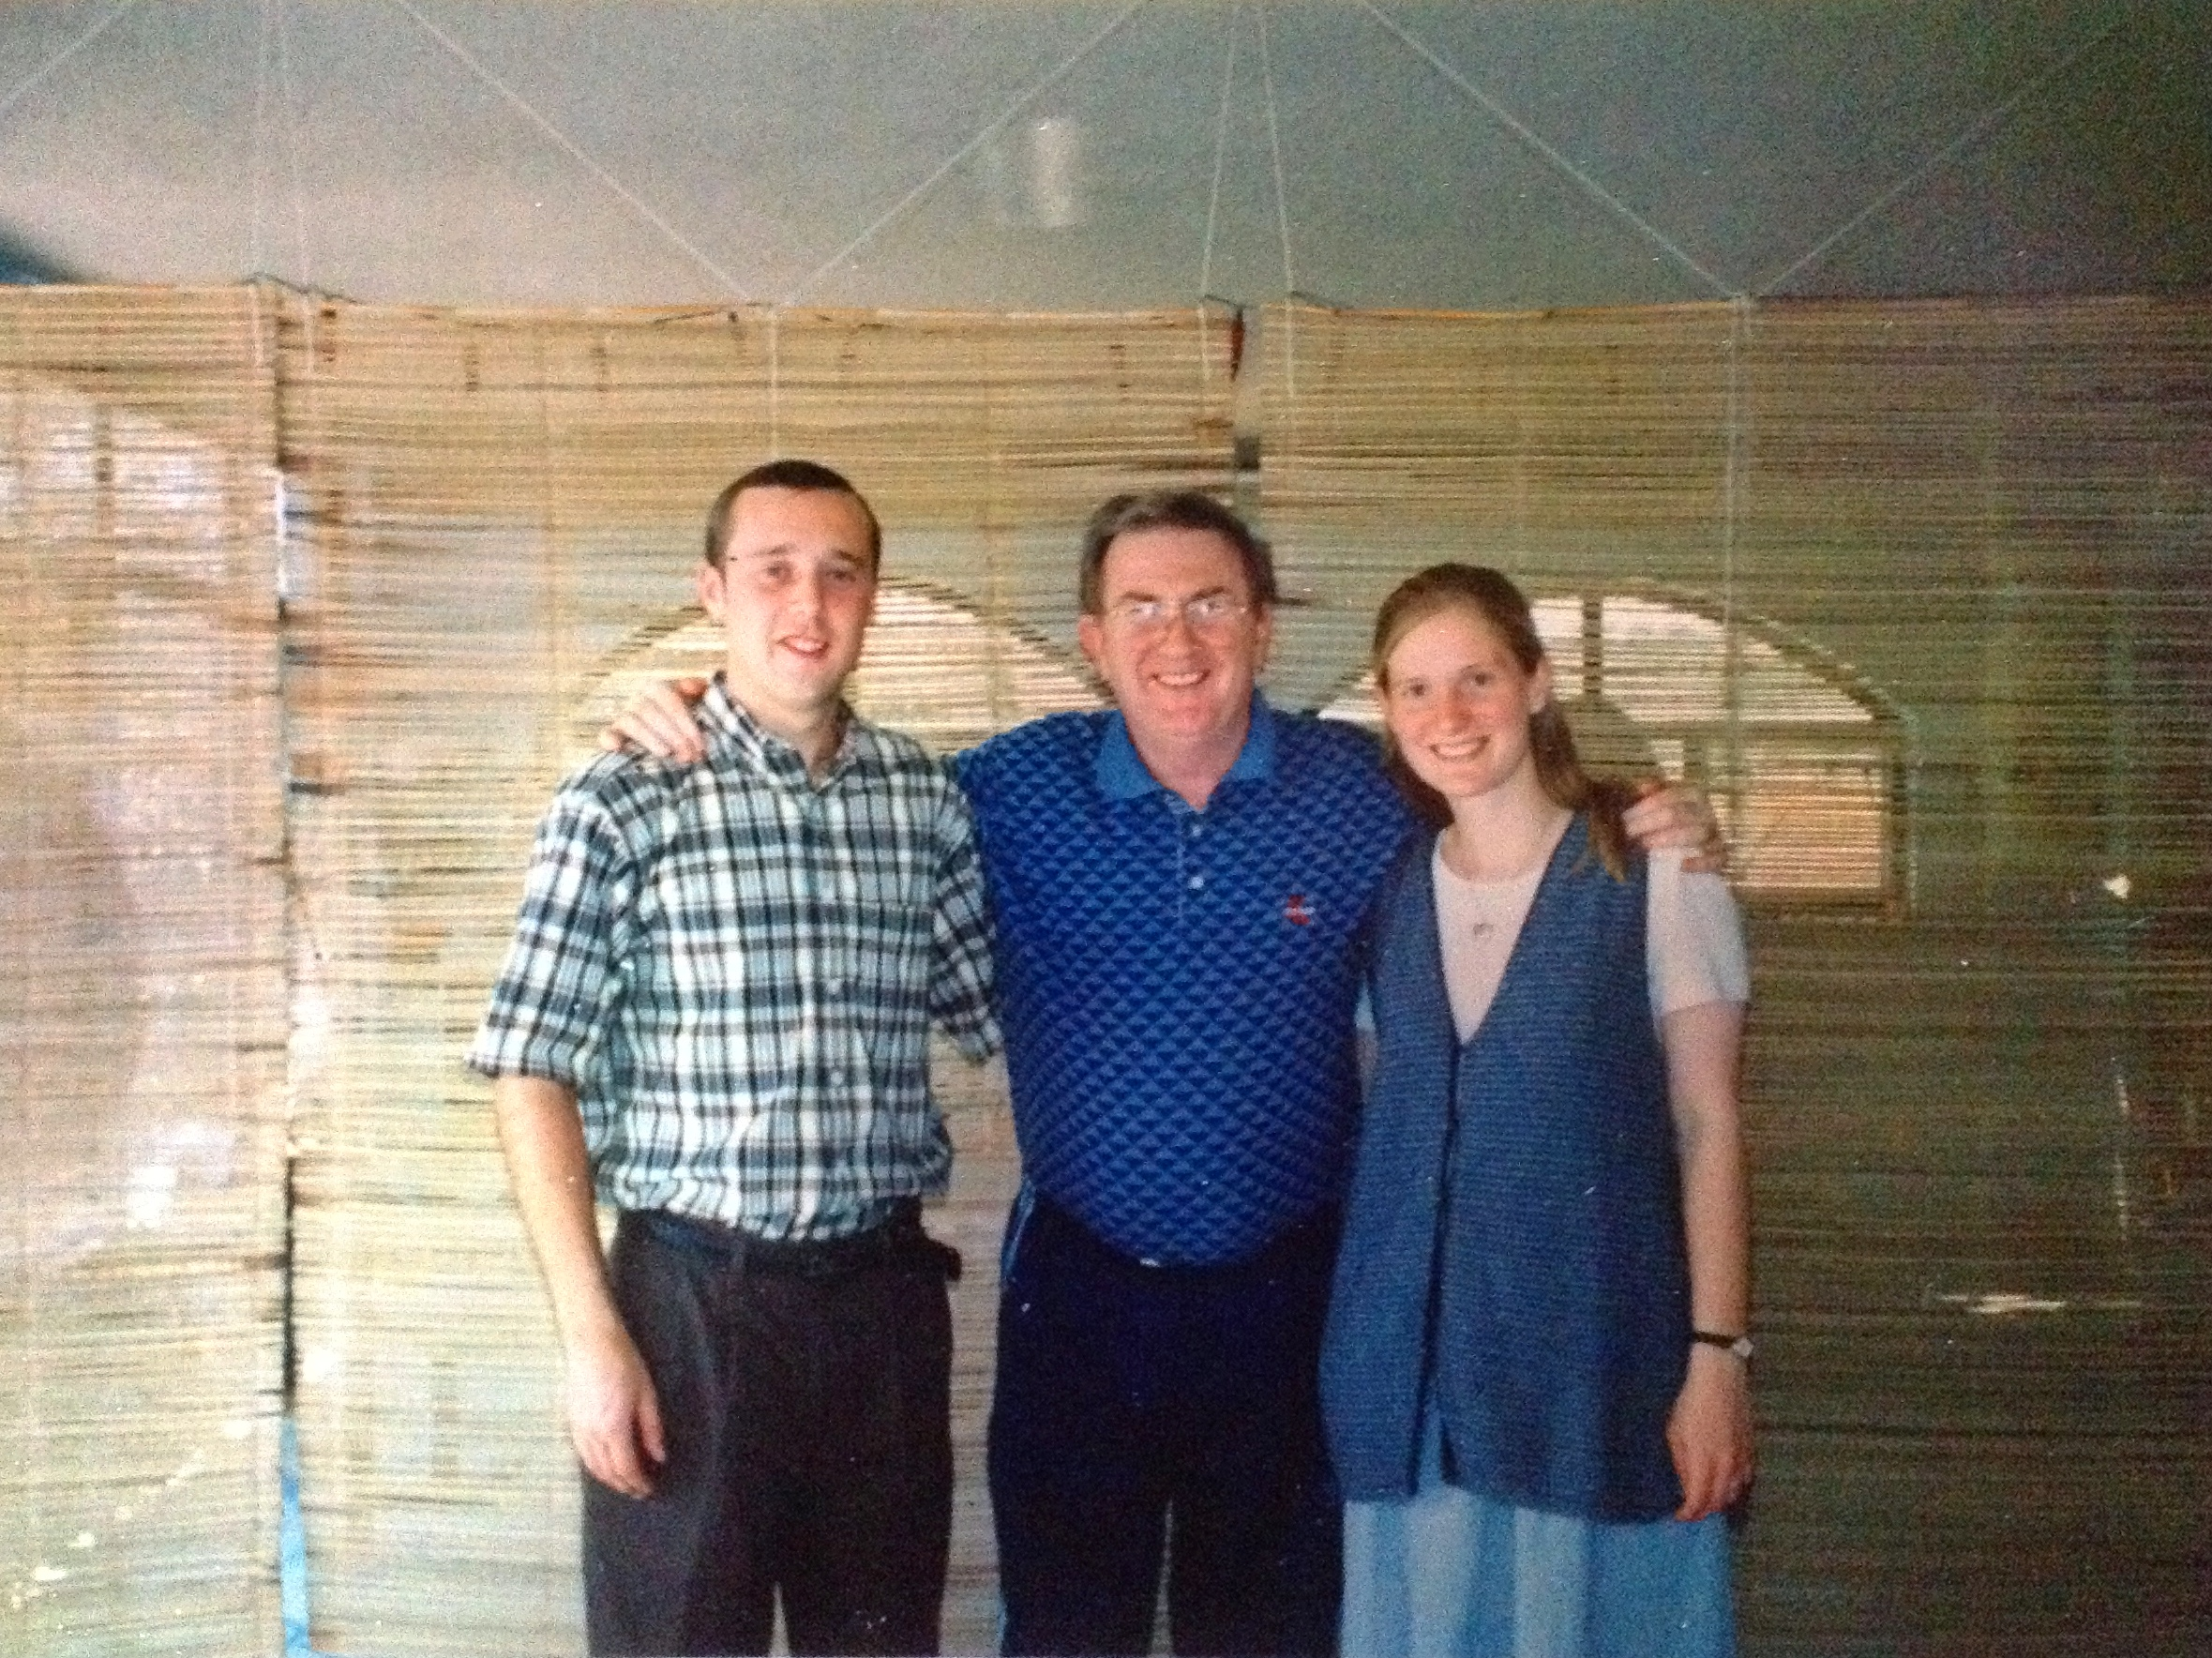 William and Katie with Pastor Kevin Gould    www.kevingould.org